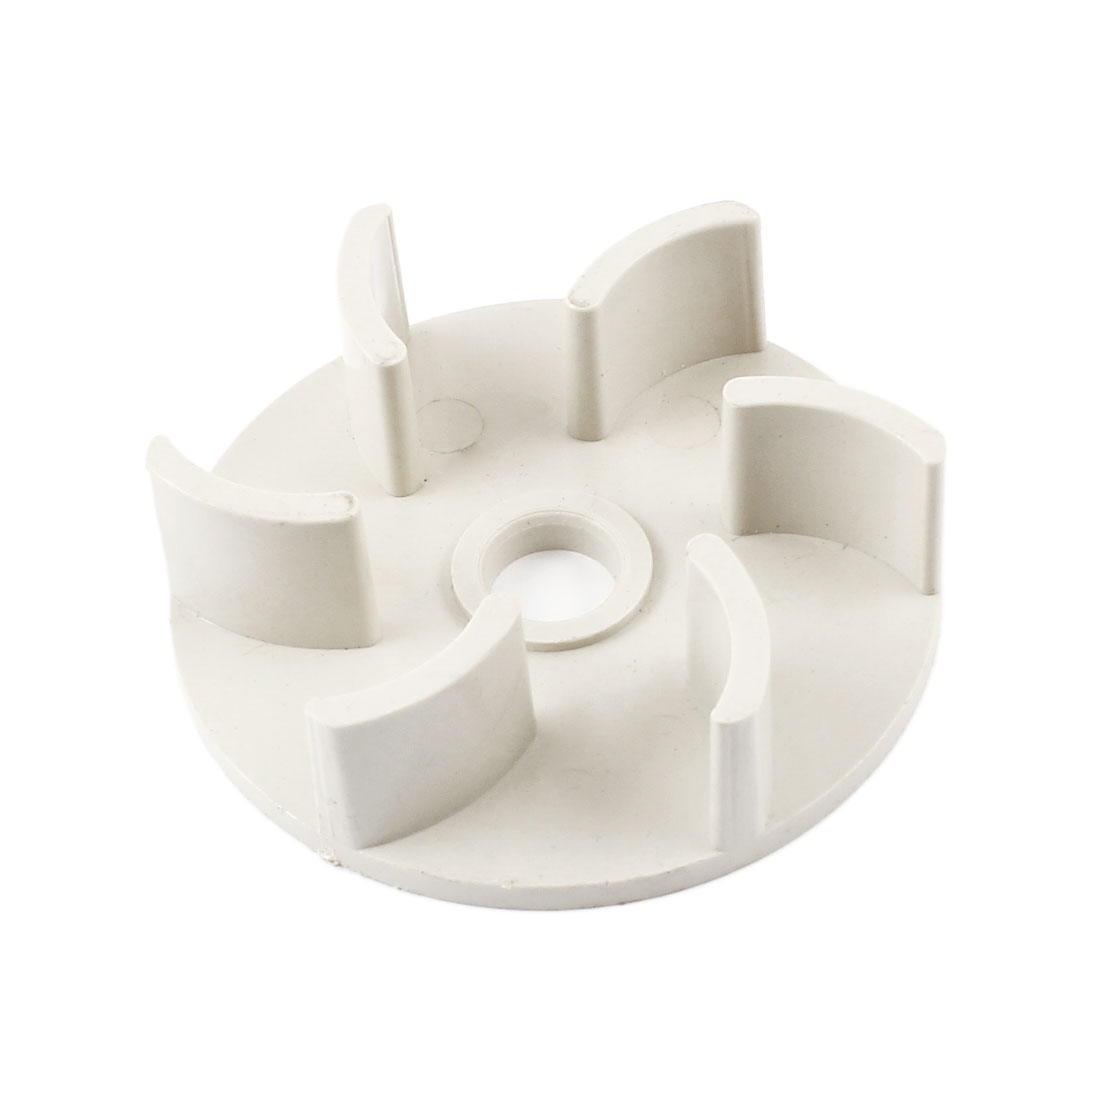 Beige Hard Plastic 61mm Outside Dia 10mm Inner Diameter 6 Fan Vanes Electric Water Fuel Pump Rotor Impeller